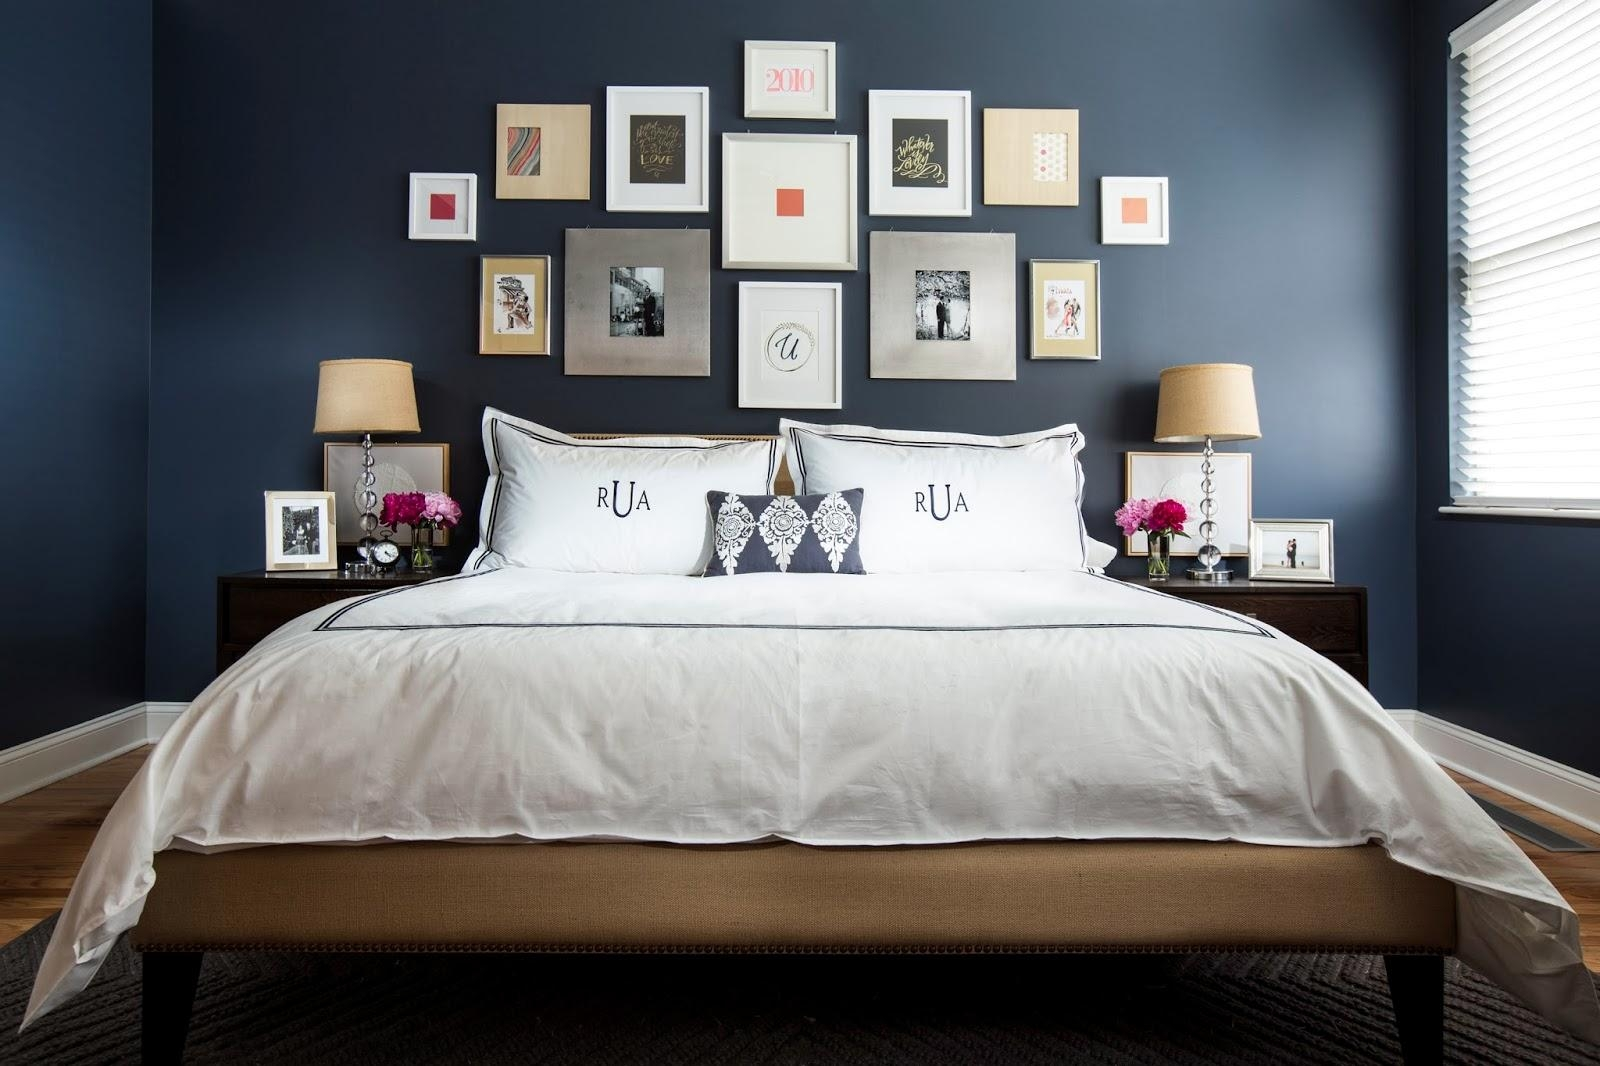 Full Of Framed Awesome Bedroom Design With Wall Art Over Bed Feat For Wall Art Over Bed (View 7 of 20)